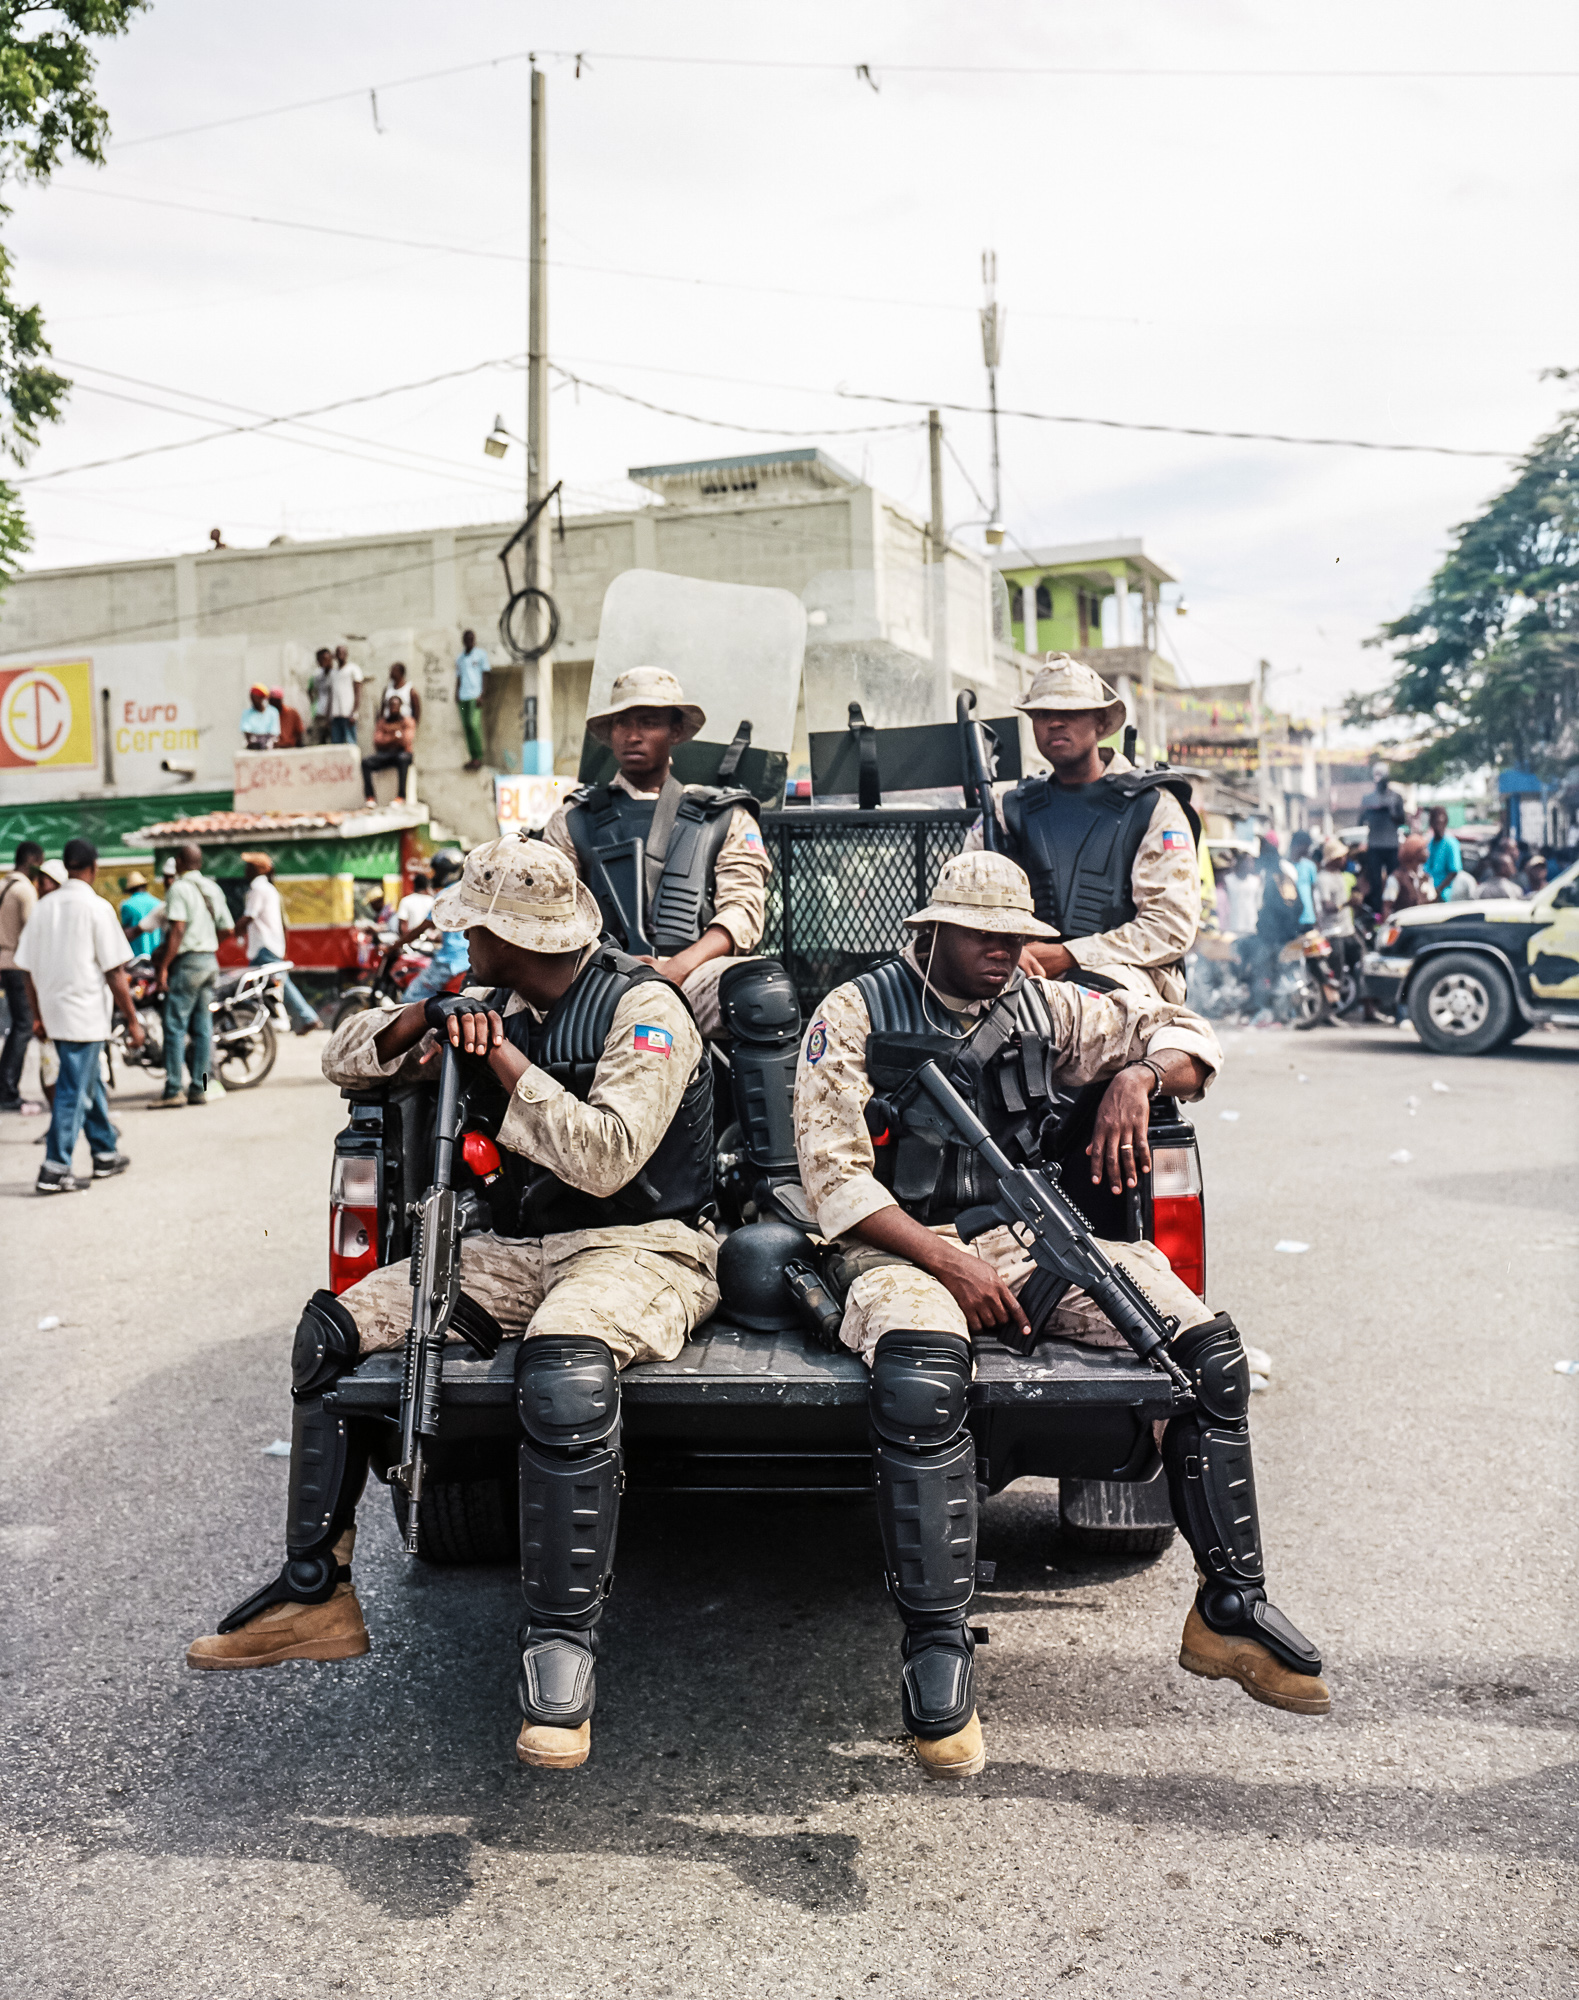 Police keep watch from the back of a pickup truck during an anti-government protest on Tuesday, December 16, 2014 in Port-au-Prince, Haiti. President Michel Martelly was elected in 2010 with great hope for reforms, but in the wake of slow recovery and parliamentary elections that are three years overdue, his popularity has suffered tremendously, forcing Prime Minister Laurent Lamothe to resign.